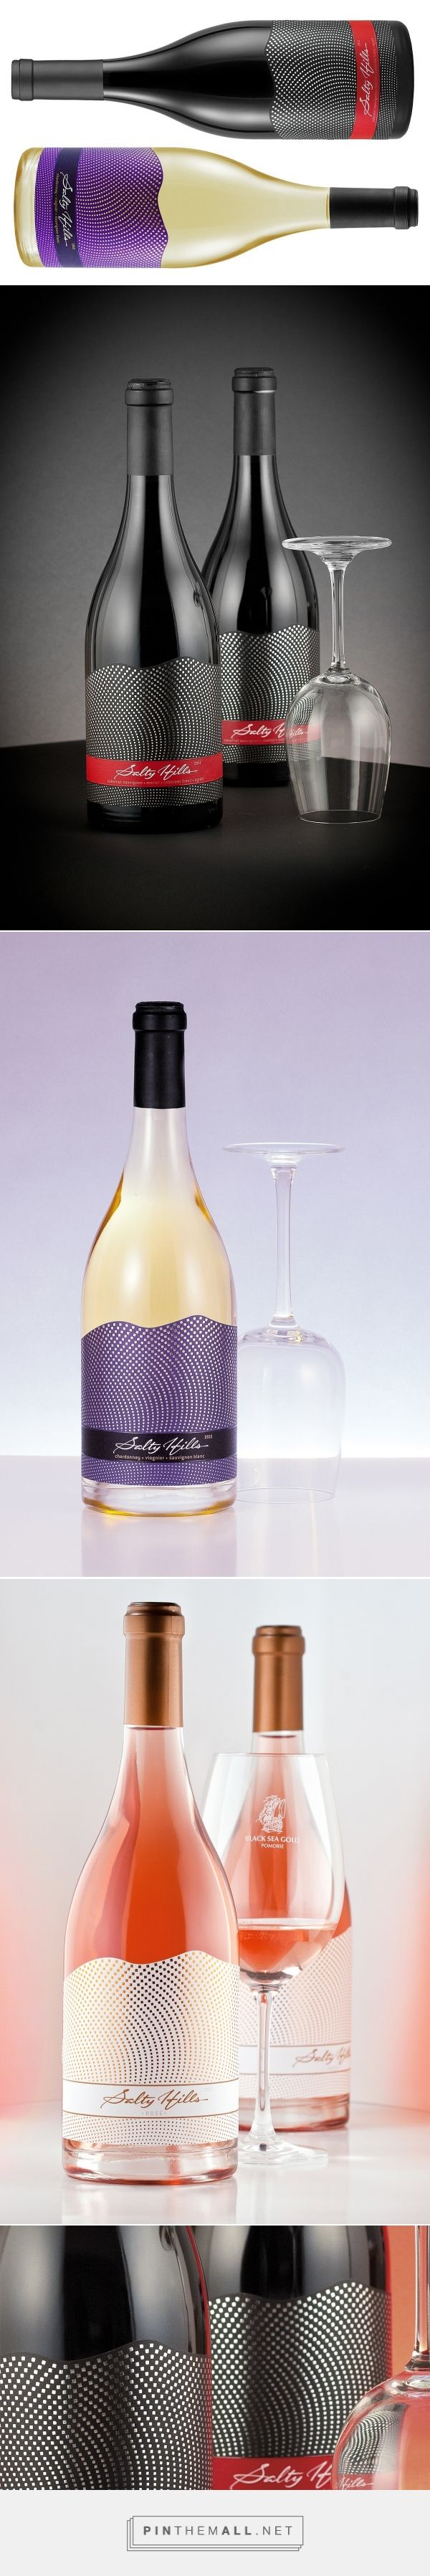 Salty Hills Wine Packaging by Thelabelmaker